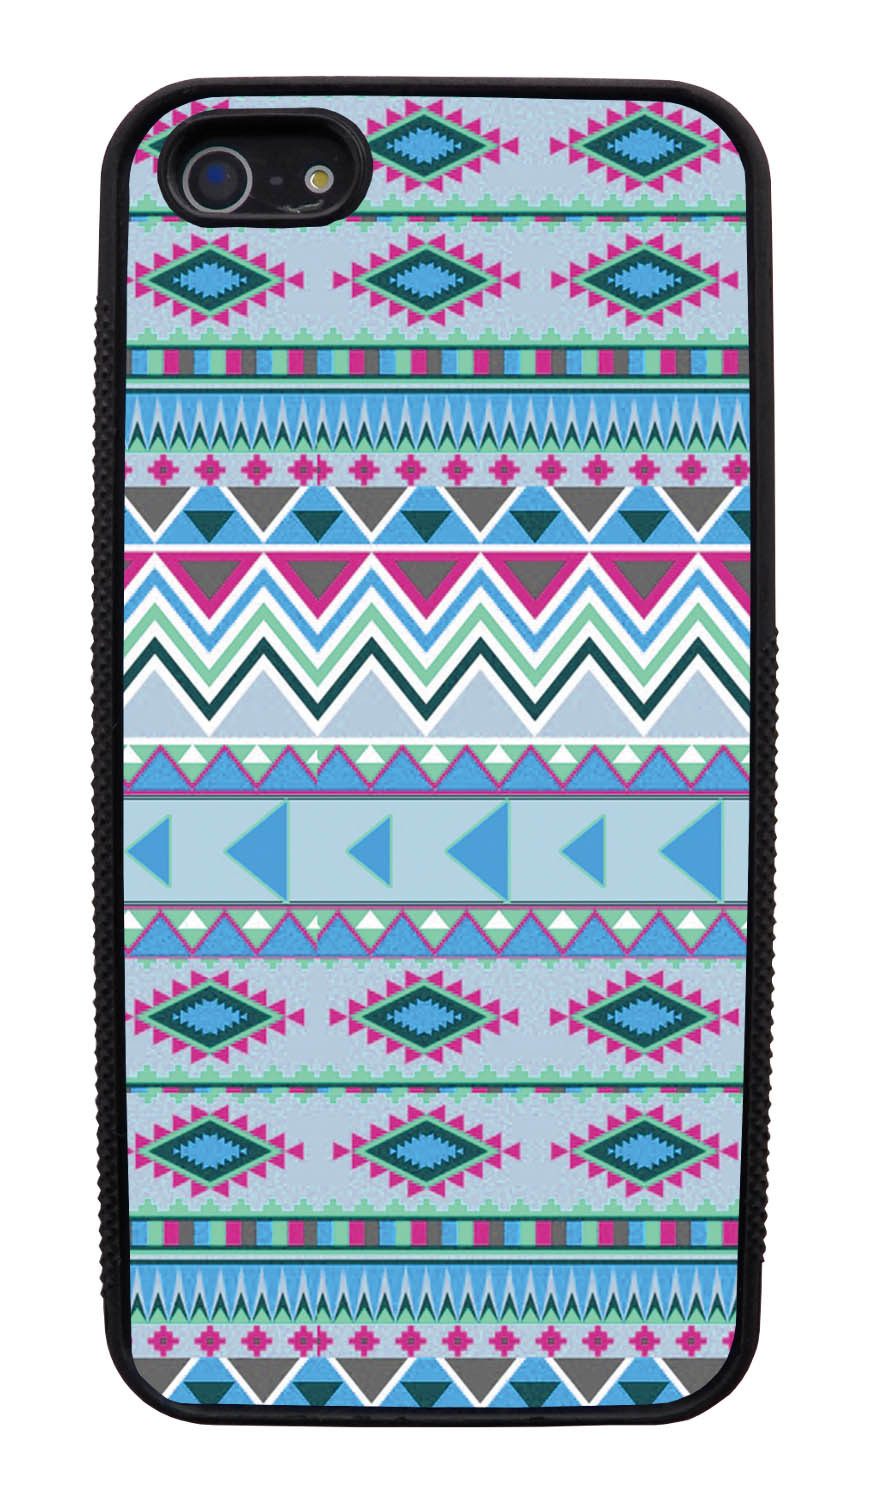 Apple iPhone 5 / 5S Aztec Case - Winter Colored - Geometric - Black Slim Rubber Case